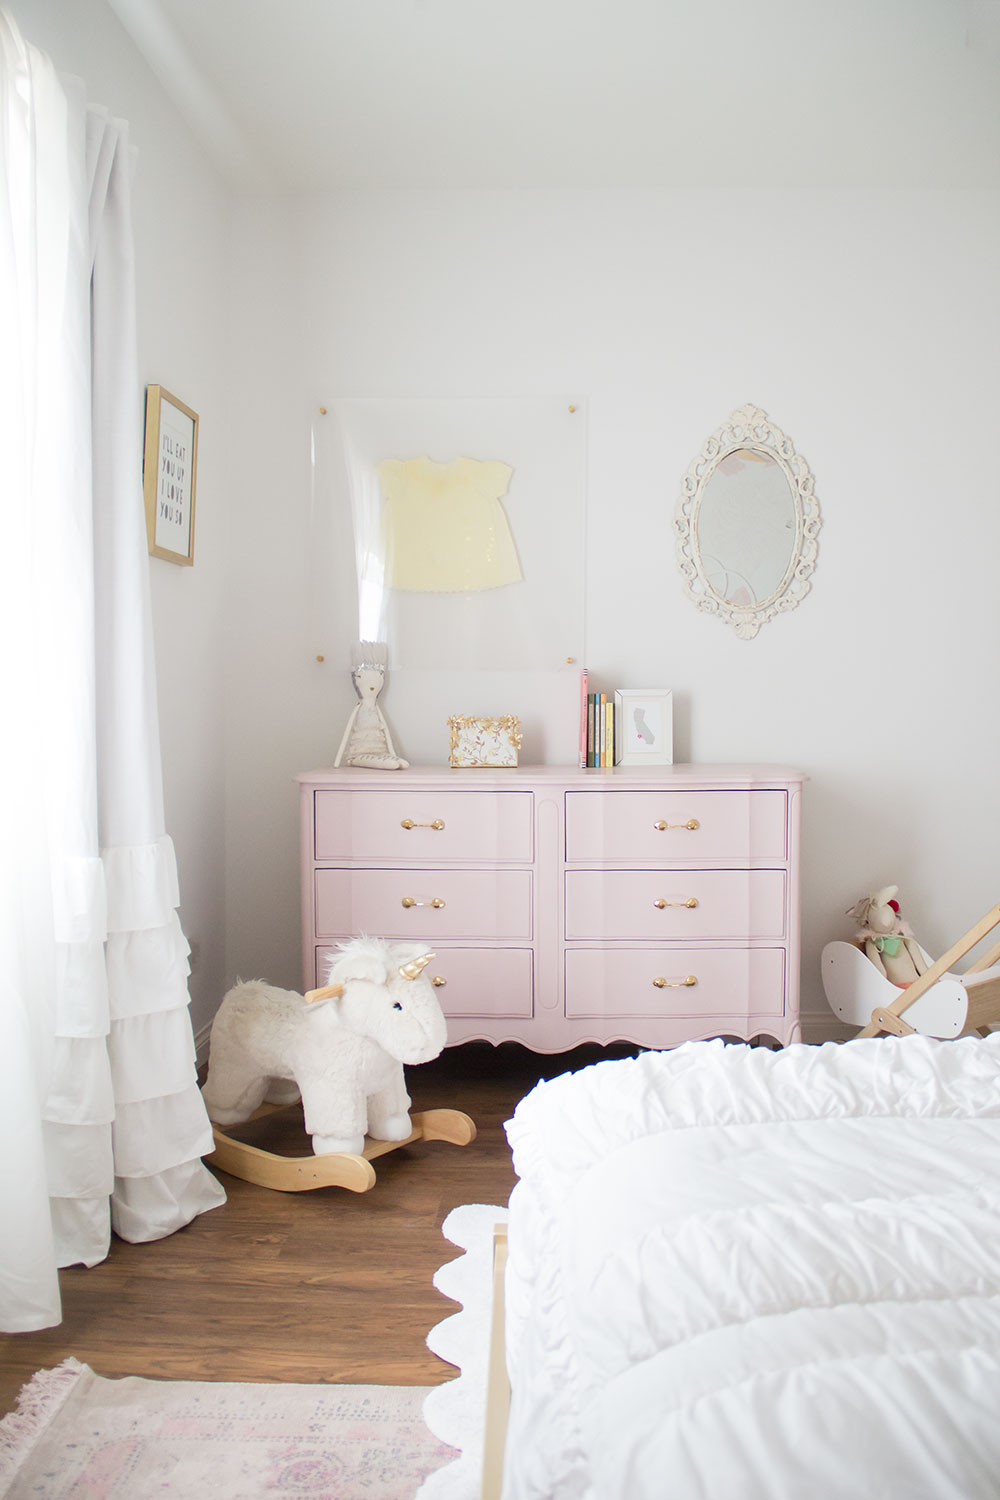 diy pastel pink dresser for a girly girl's new big girl room reveal | thelovedesignedlife.com